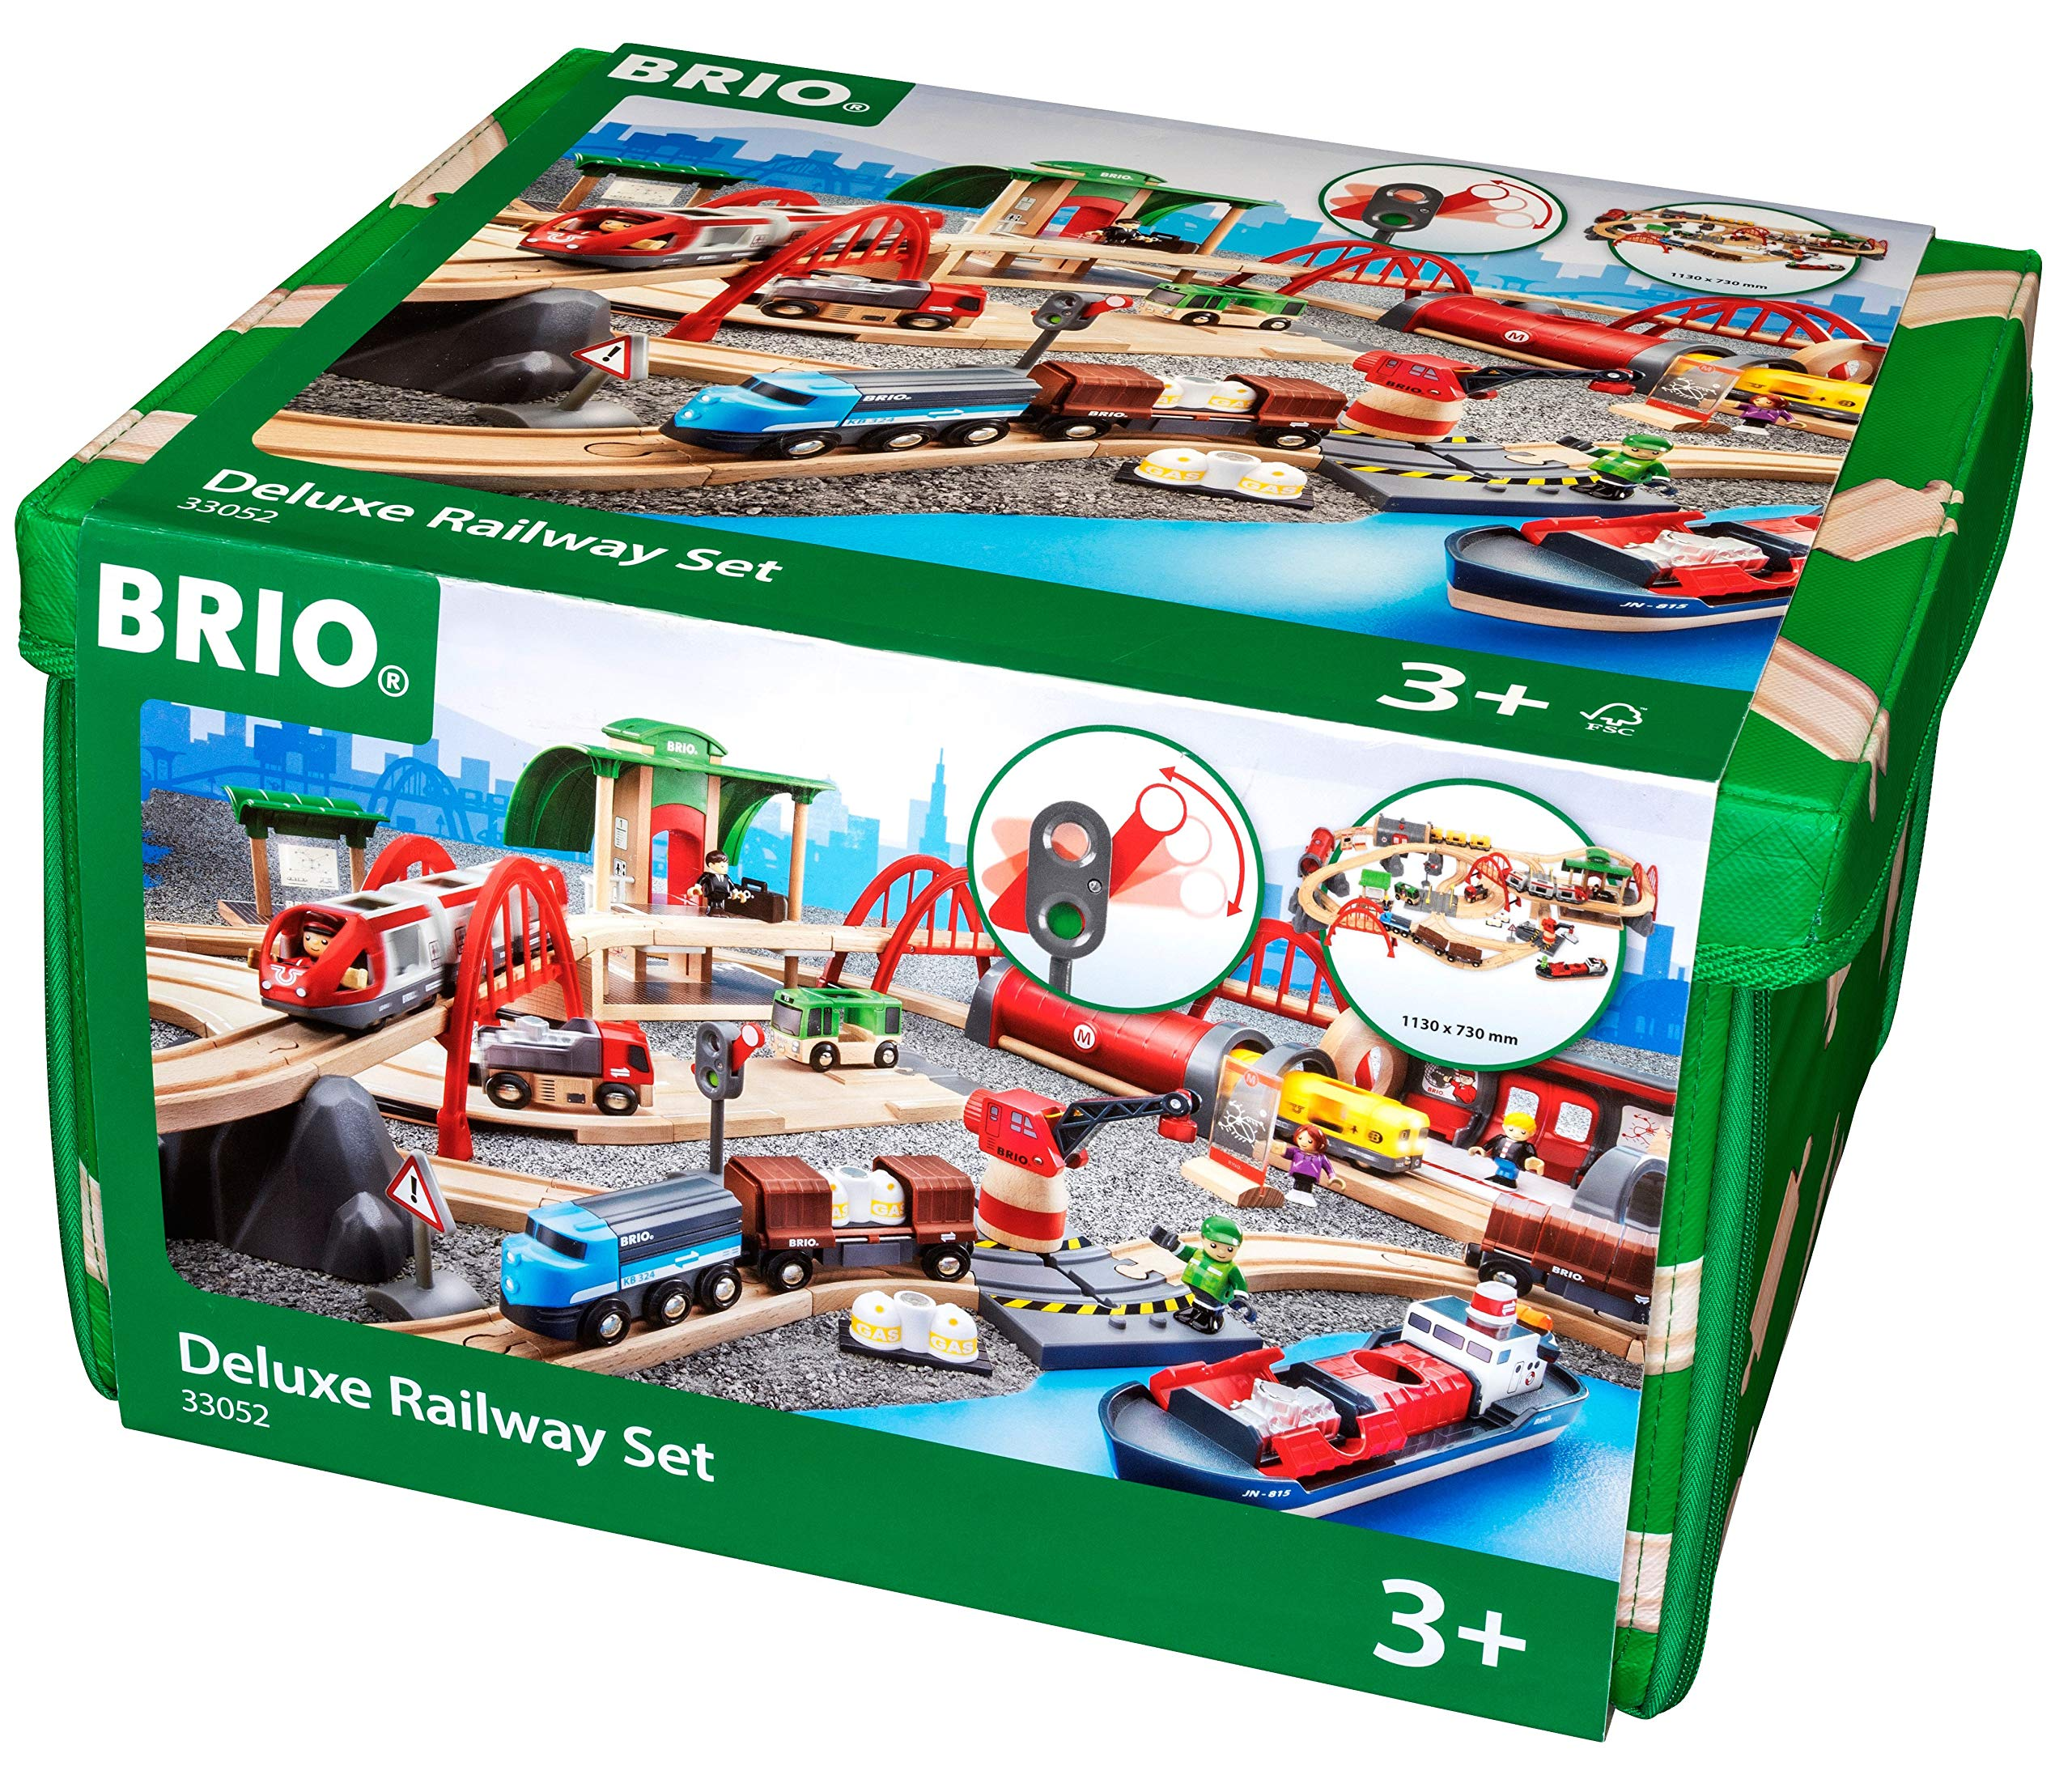 Brio World 33052 Deluxe Railway Set | Wooden Toy Train Set for Kids Age 3 and Up by Brio